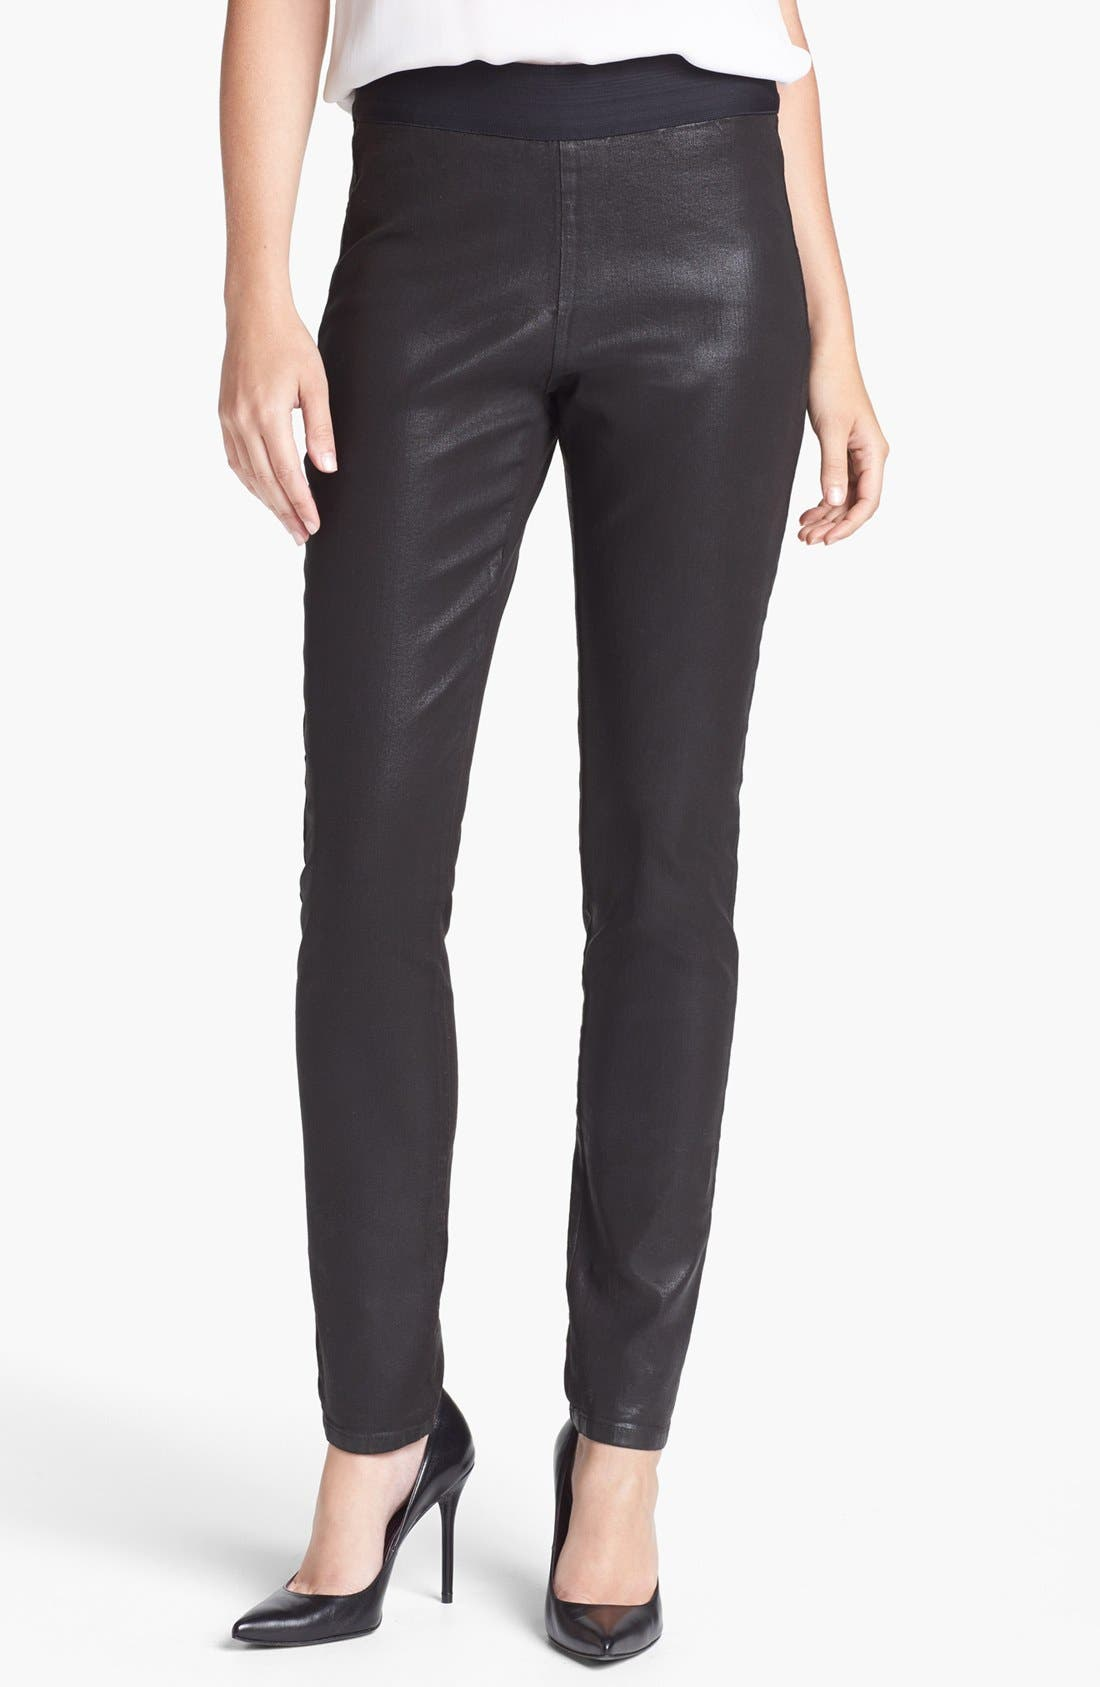 Main Image - NYDJ 'Gia' Coated Stretch Pull-On Pants